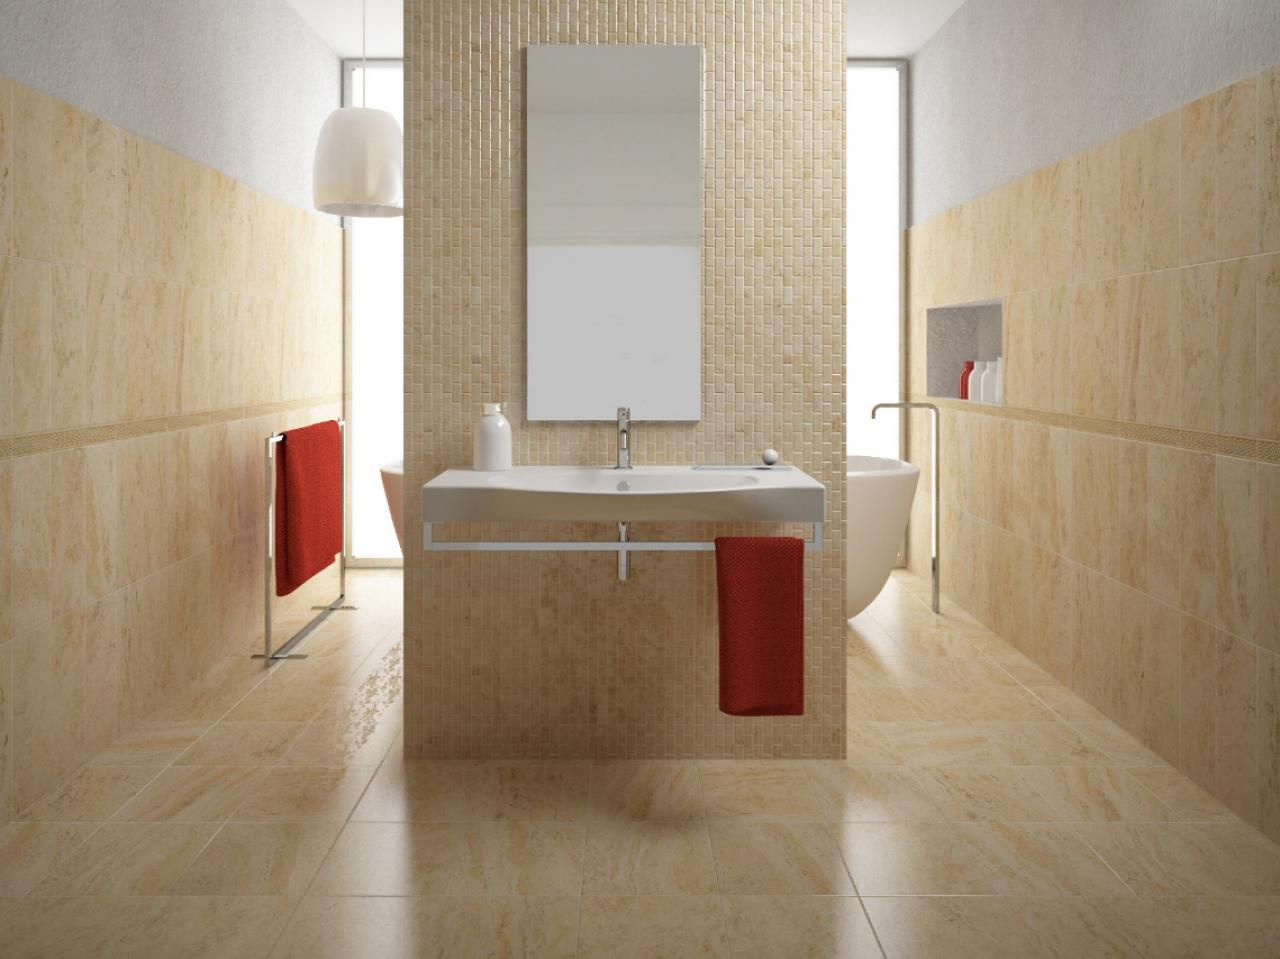 Porcelain Tile Bathroom Floors Beauty Porcelain Tiles and New Life